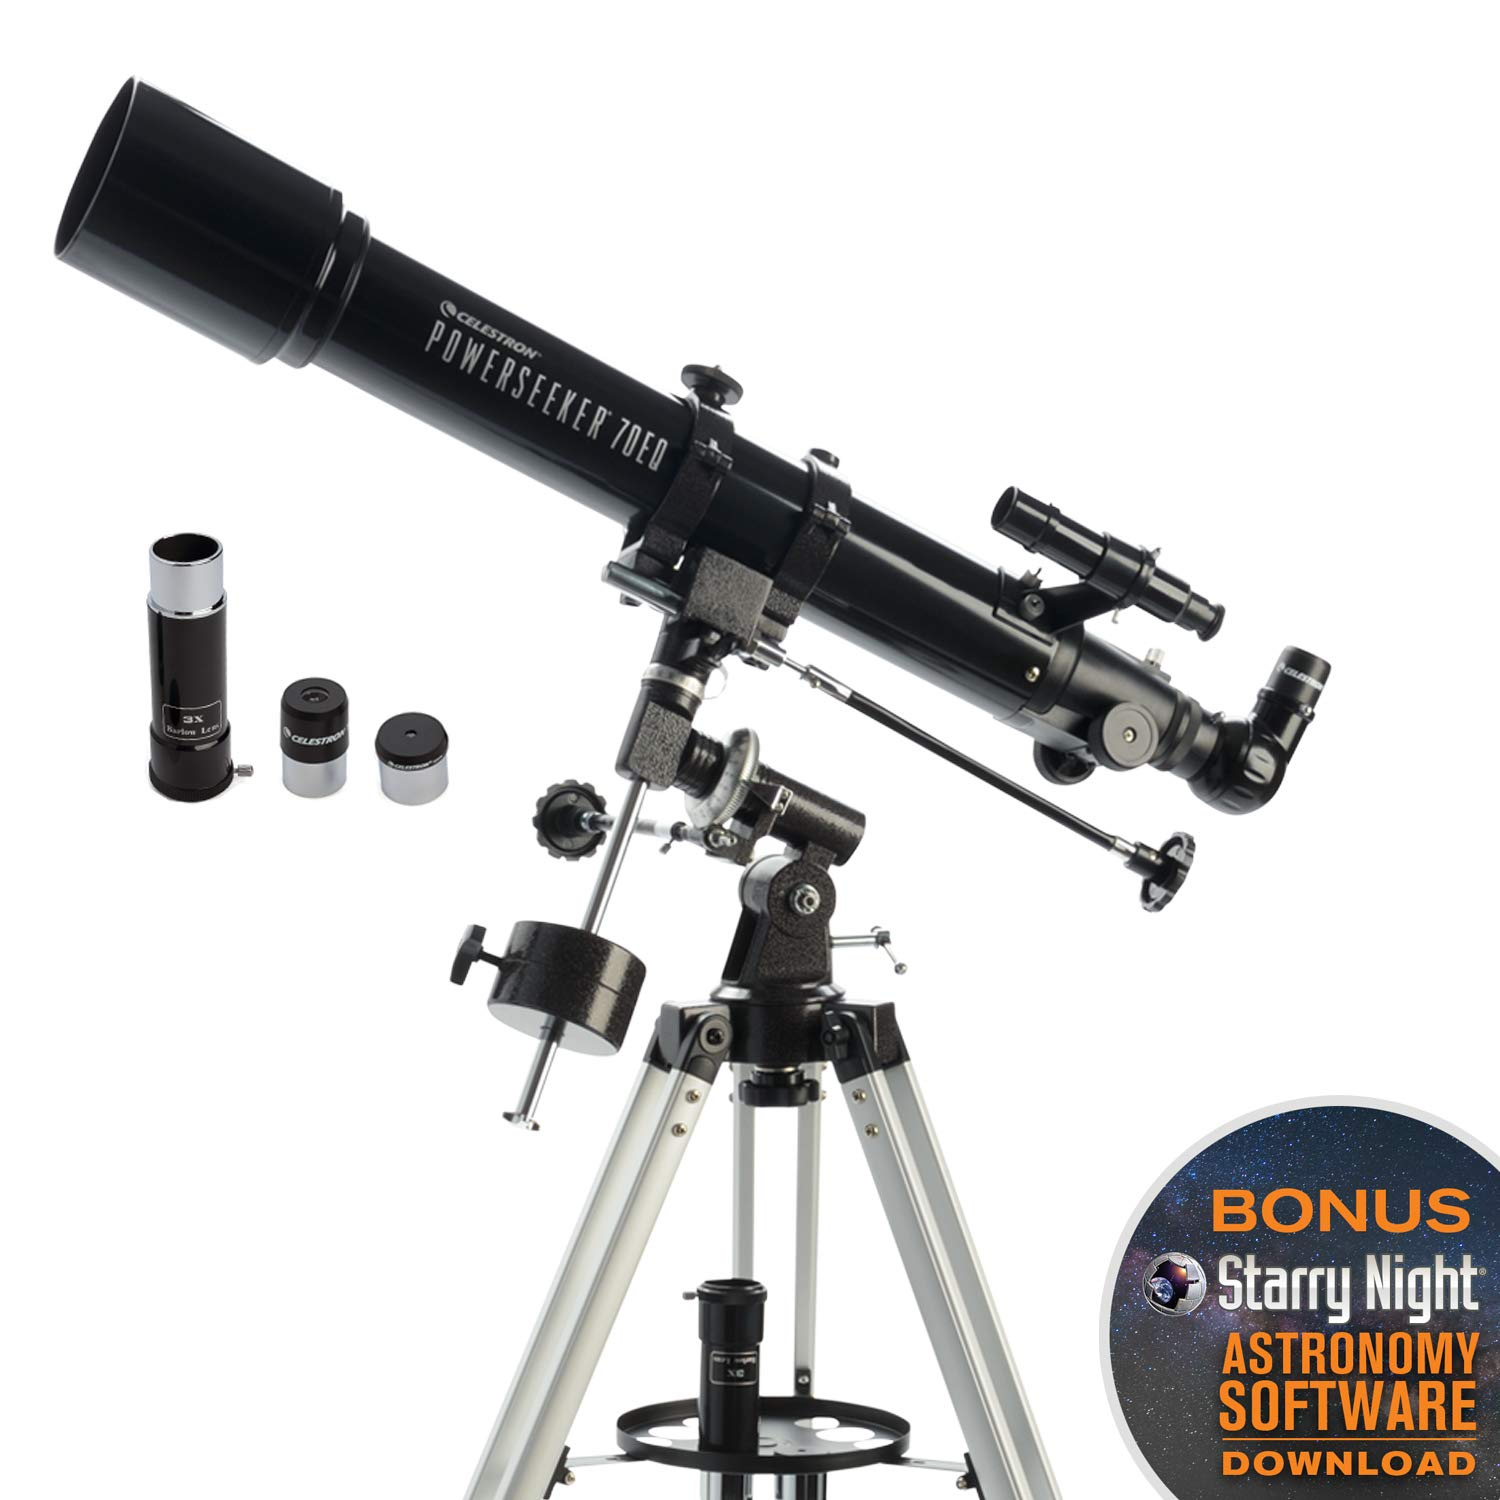 Celestron - PowerSeeker 70EQ Telescope - Manual German Equatorial Telescope for Beginners - Compact and Portable - BONUS Astronomy Software Package - 70mm Aperture by Celestron